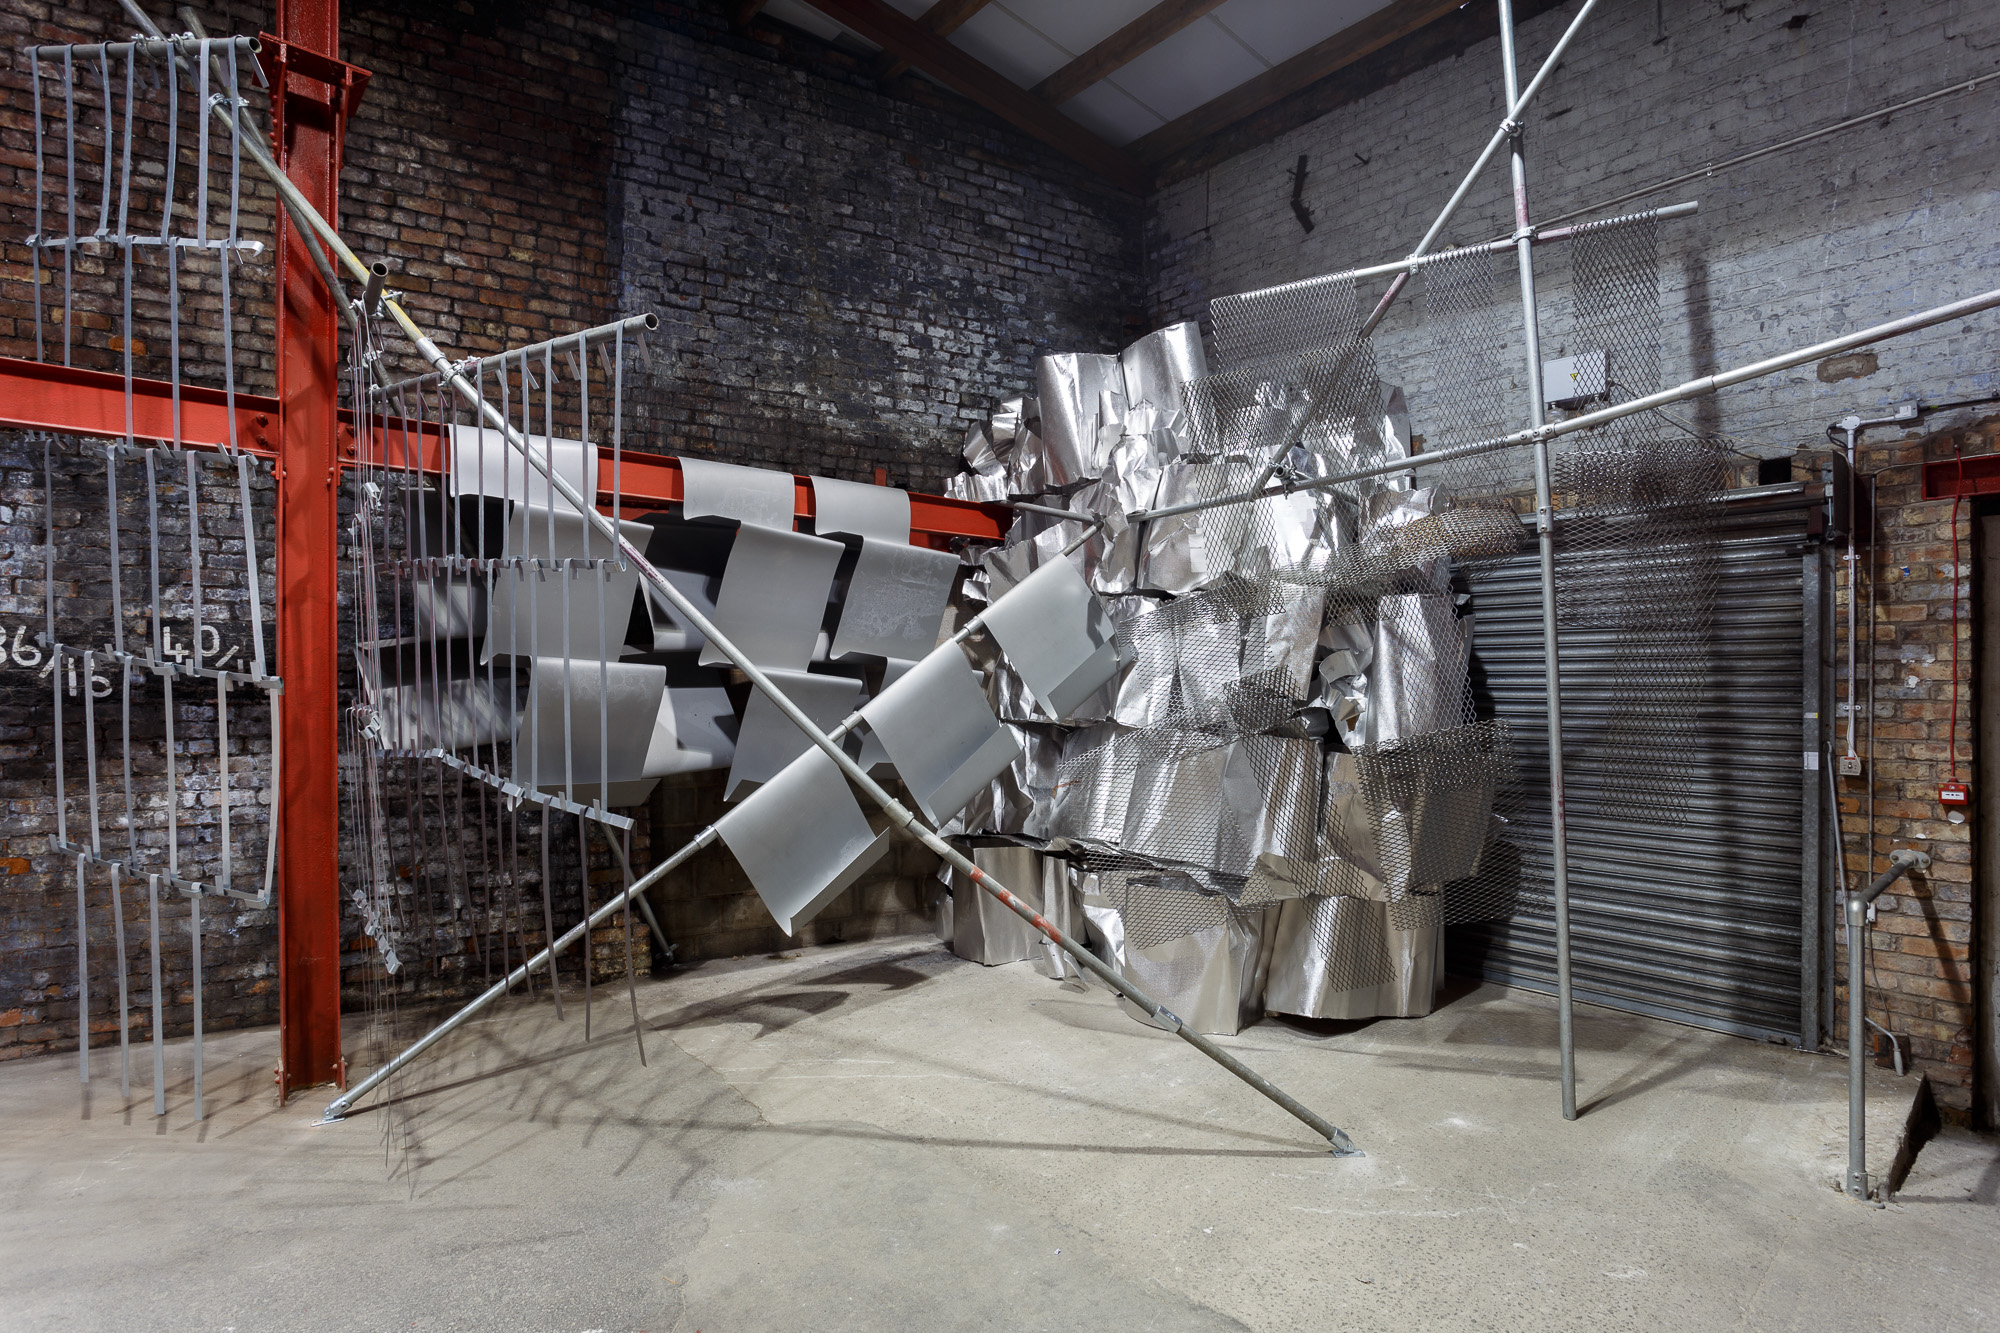 Mild steel and Aluminium. Site responsivse installation at AIR Gallery, Altrincham. 5m x 5m x 7m approx. 2017. Image credits: Jules Lister